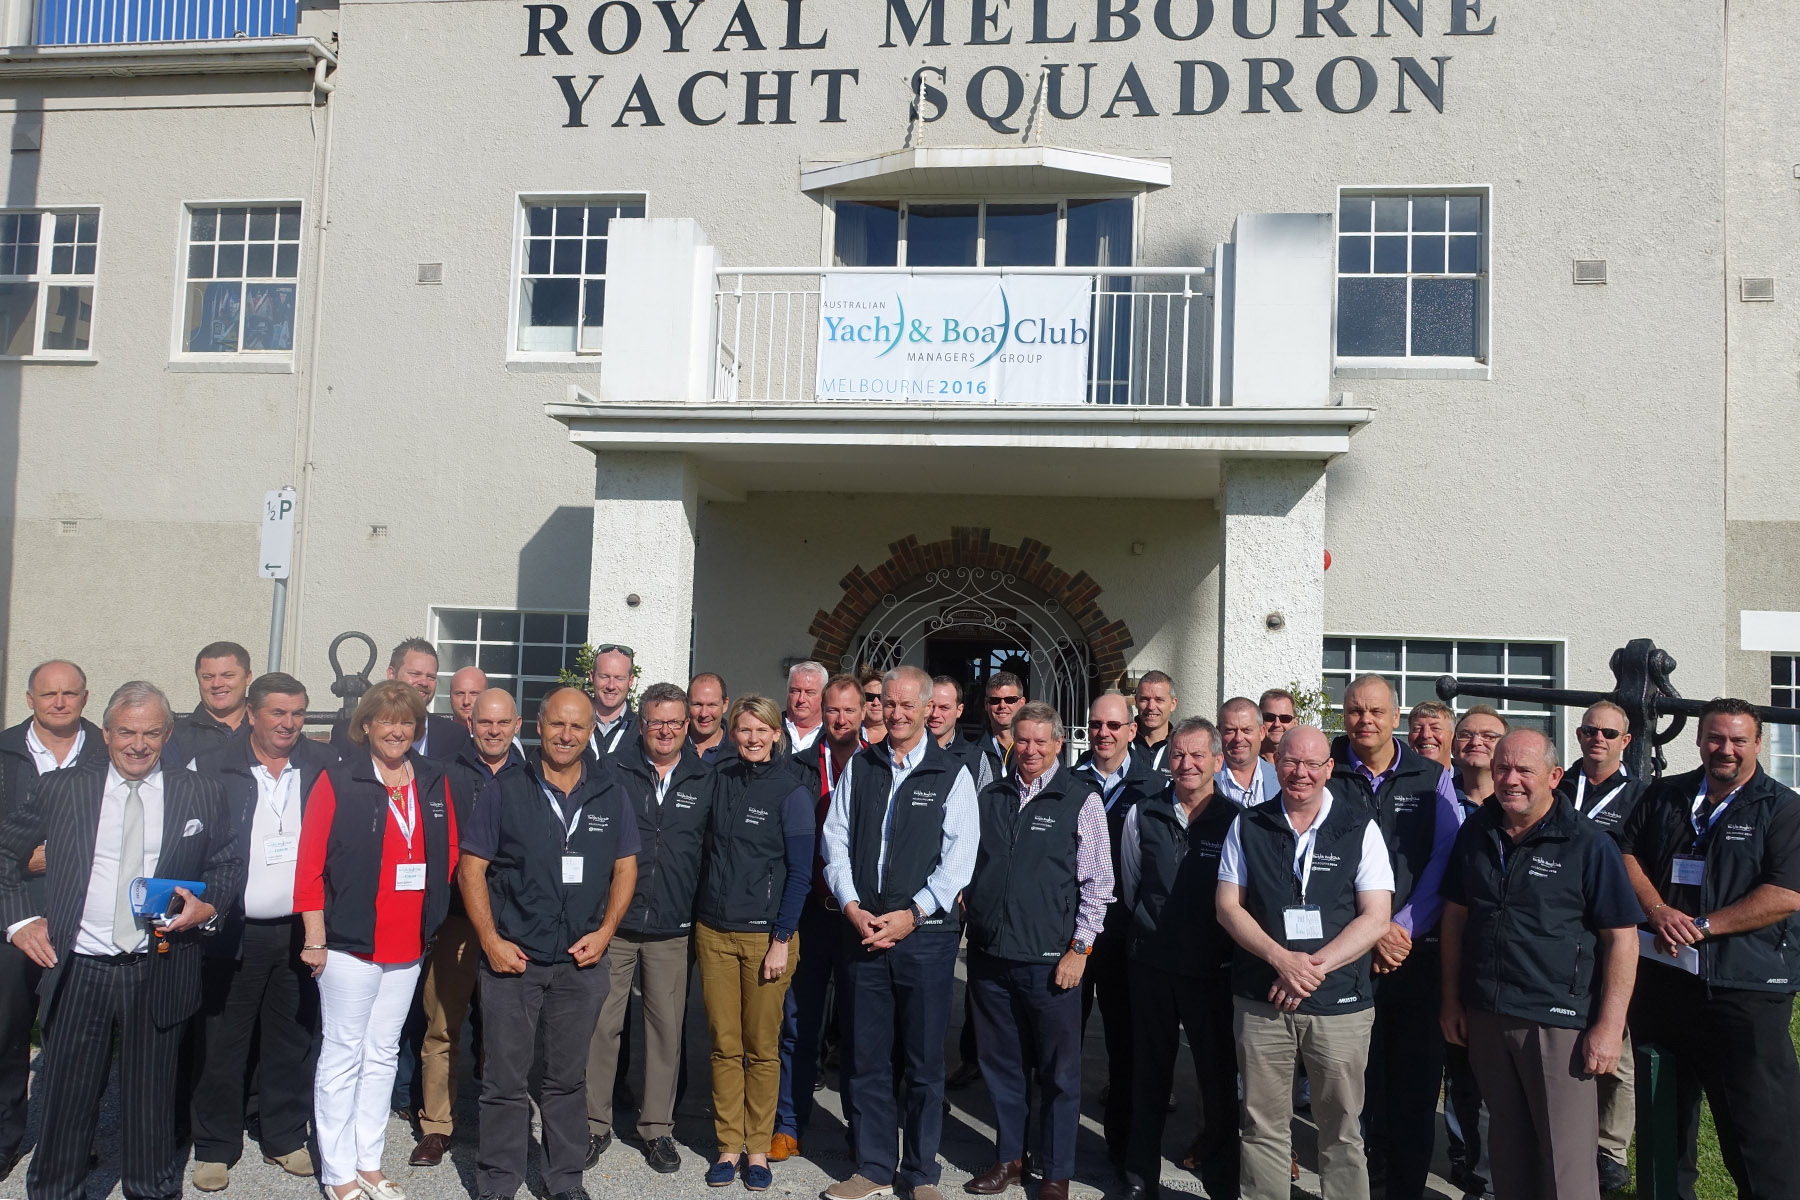 Invite Only – Select group of Yacht Club Managers to meet on the Gold Coast